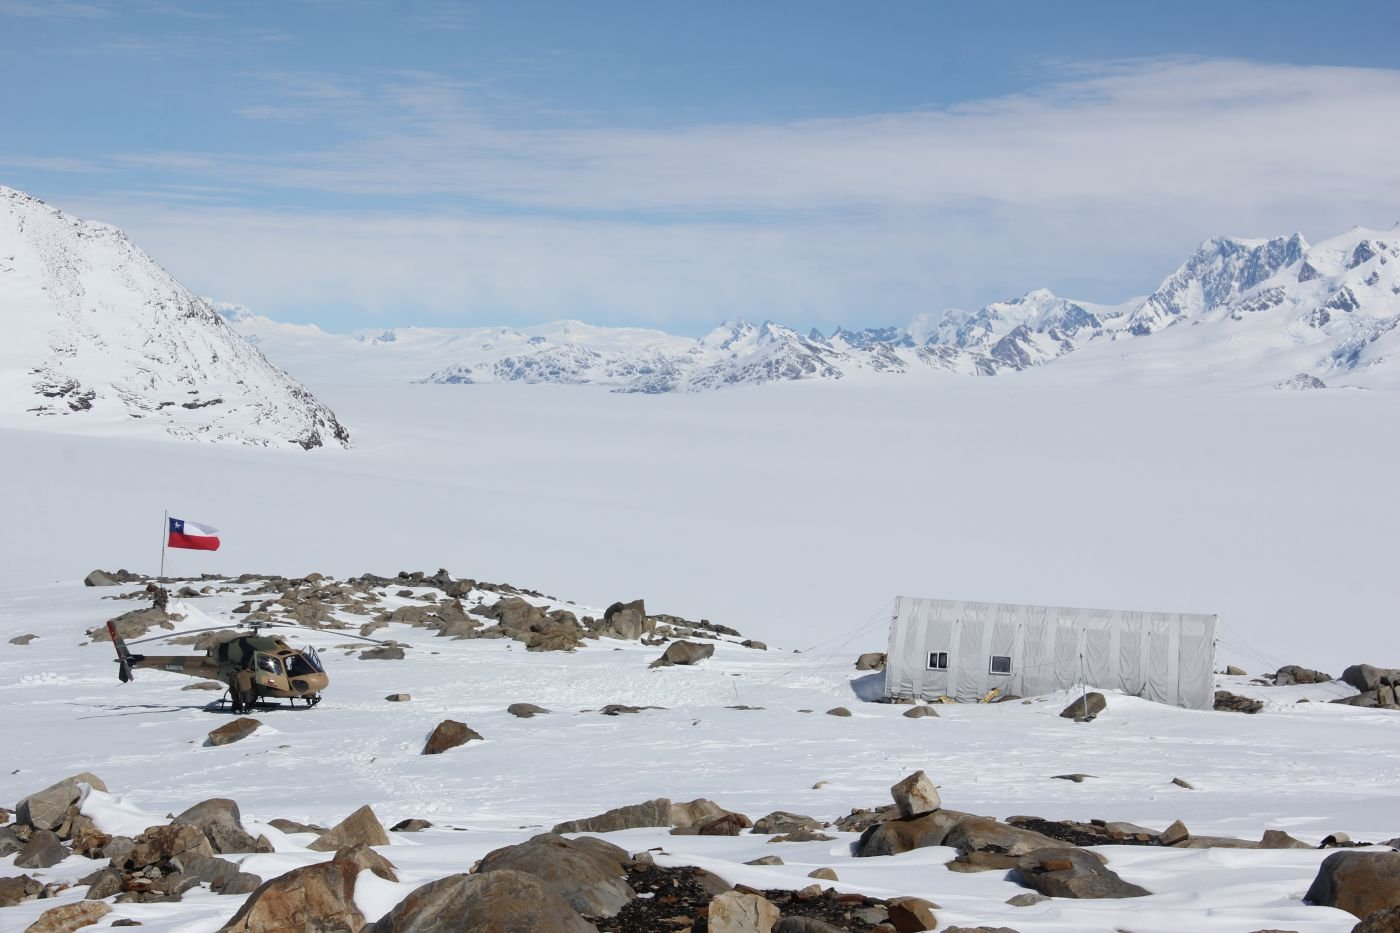 Chilean Army Helps Build Shelters in Southern Patagonian Ice Field